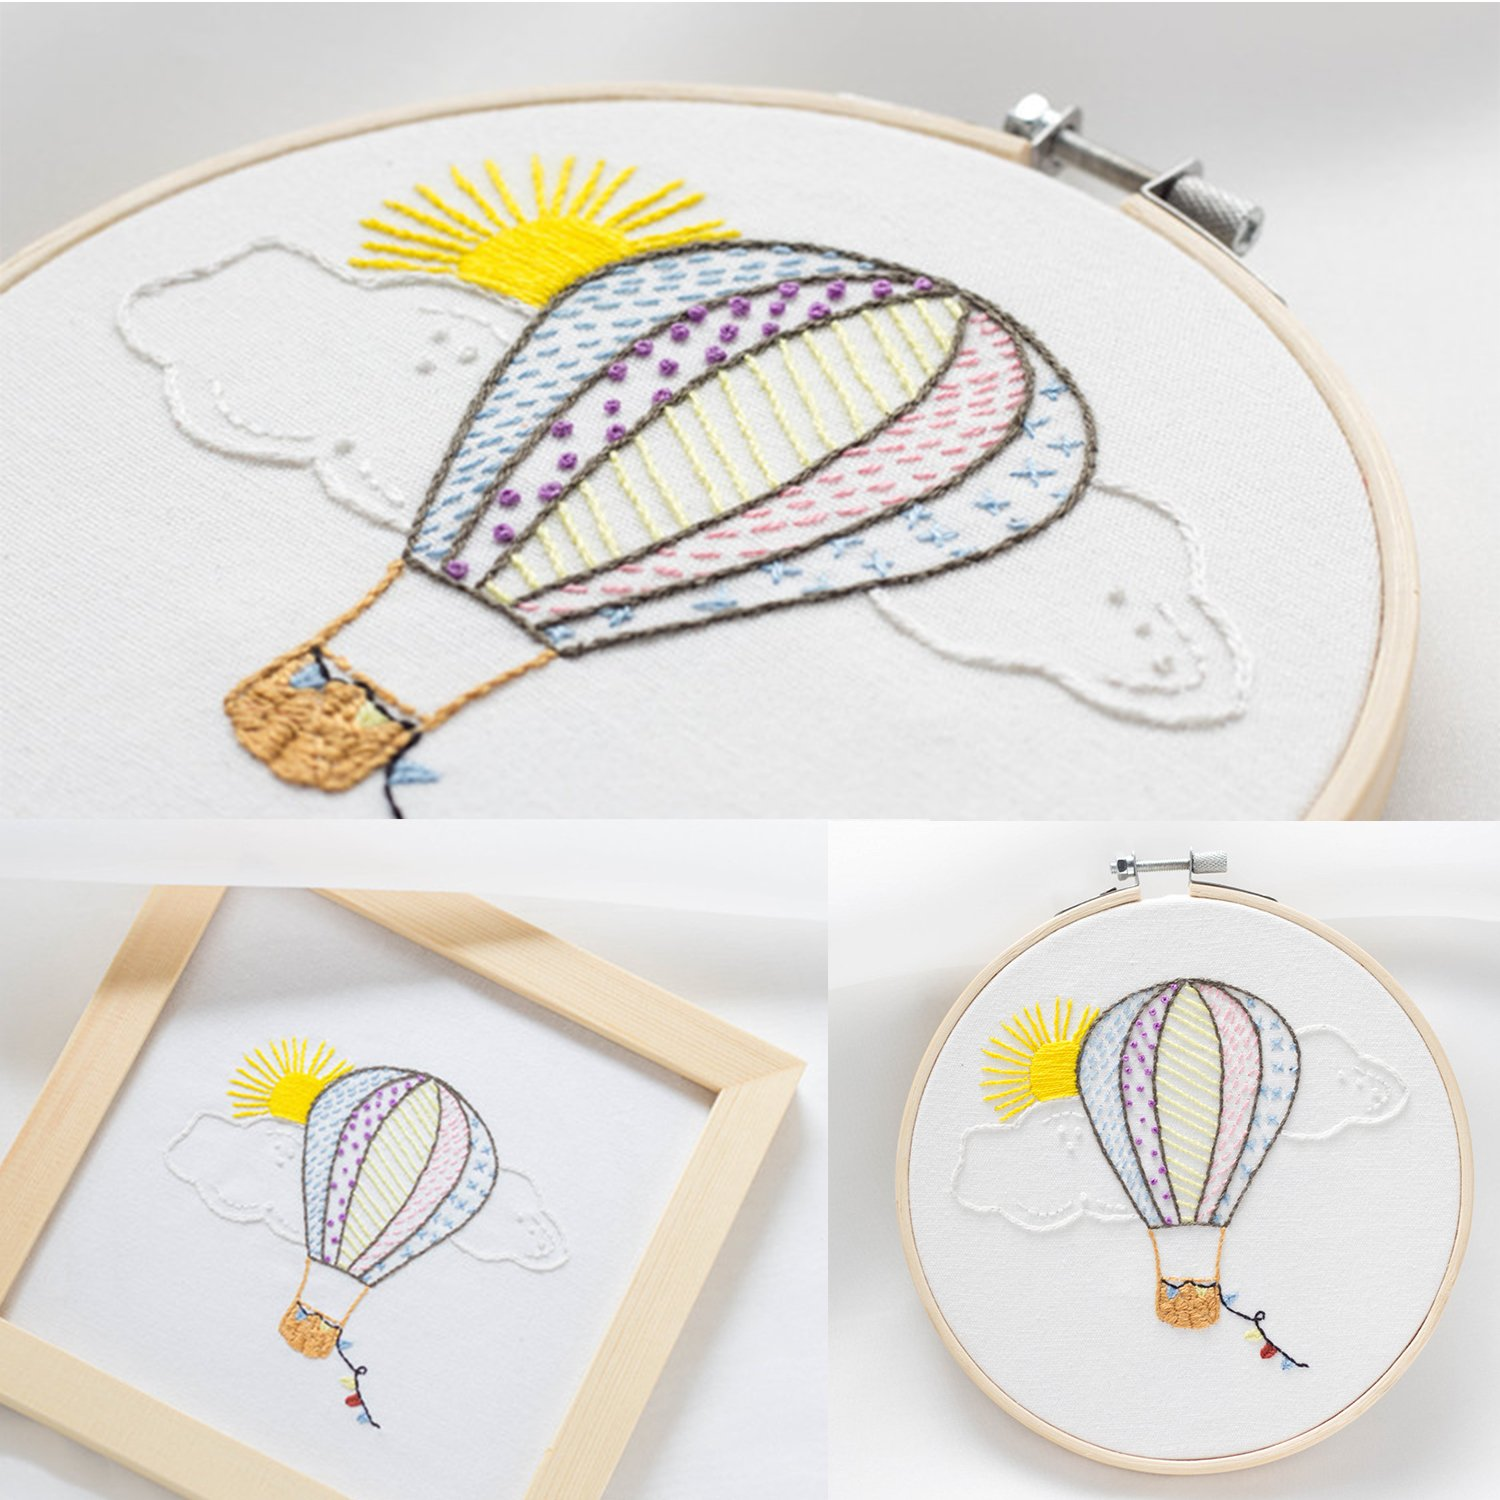 Color Threads Unime Embroidery Starter Kit with Partten Full Range Embroidery Kit with Embroidery Cloth Embroidery Hoop Needles